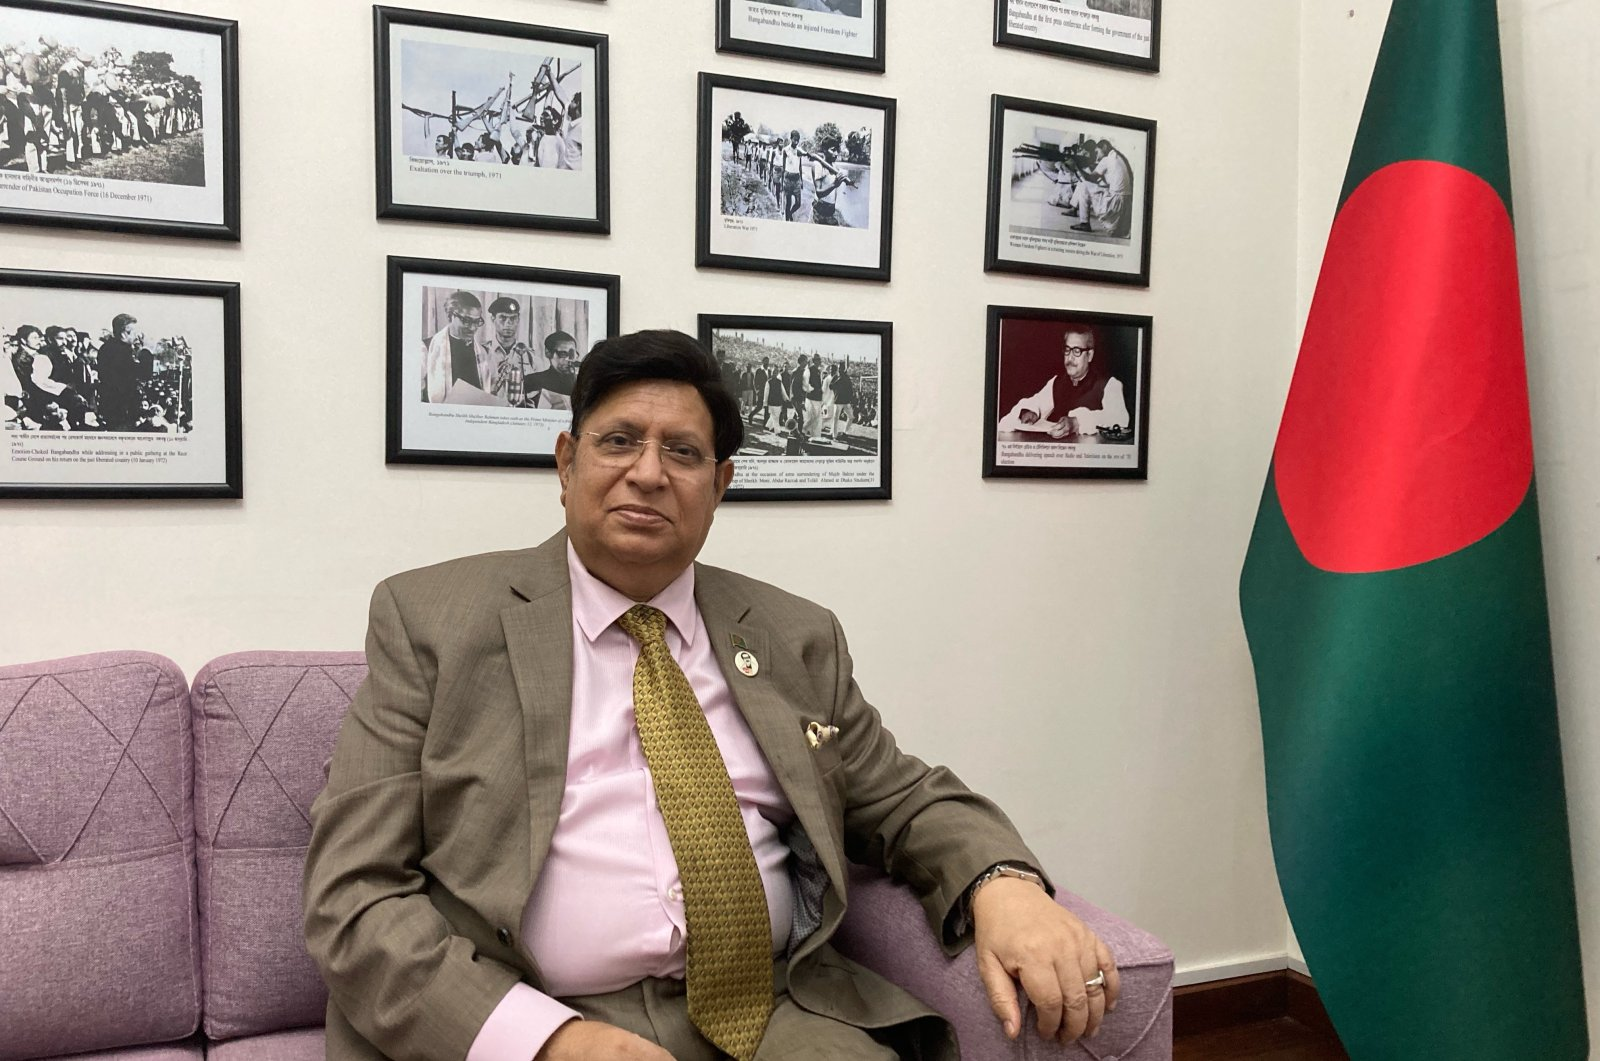 Bangladesh's foreign minister, Dr. A.K. Abdul Momen, during an interview with Daily Sabah in Istanbul, Turkey, July 15, 2021. (Photo by Meryem Ilayda Atlas)